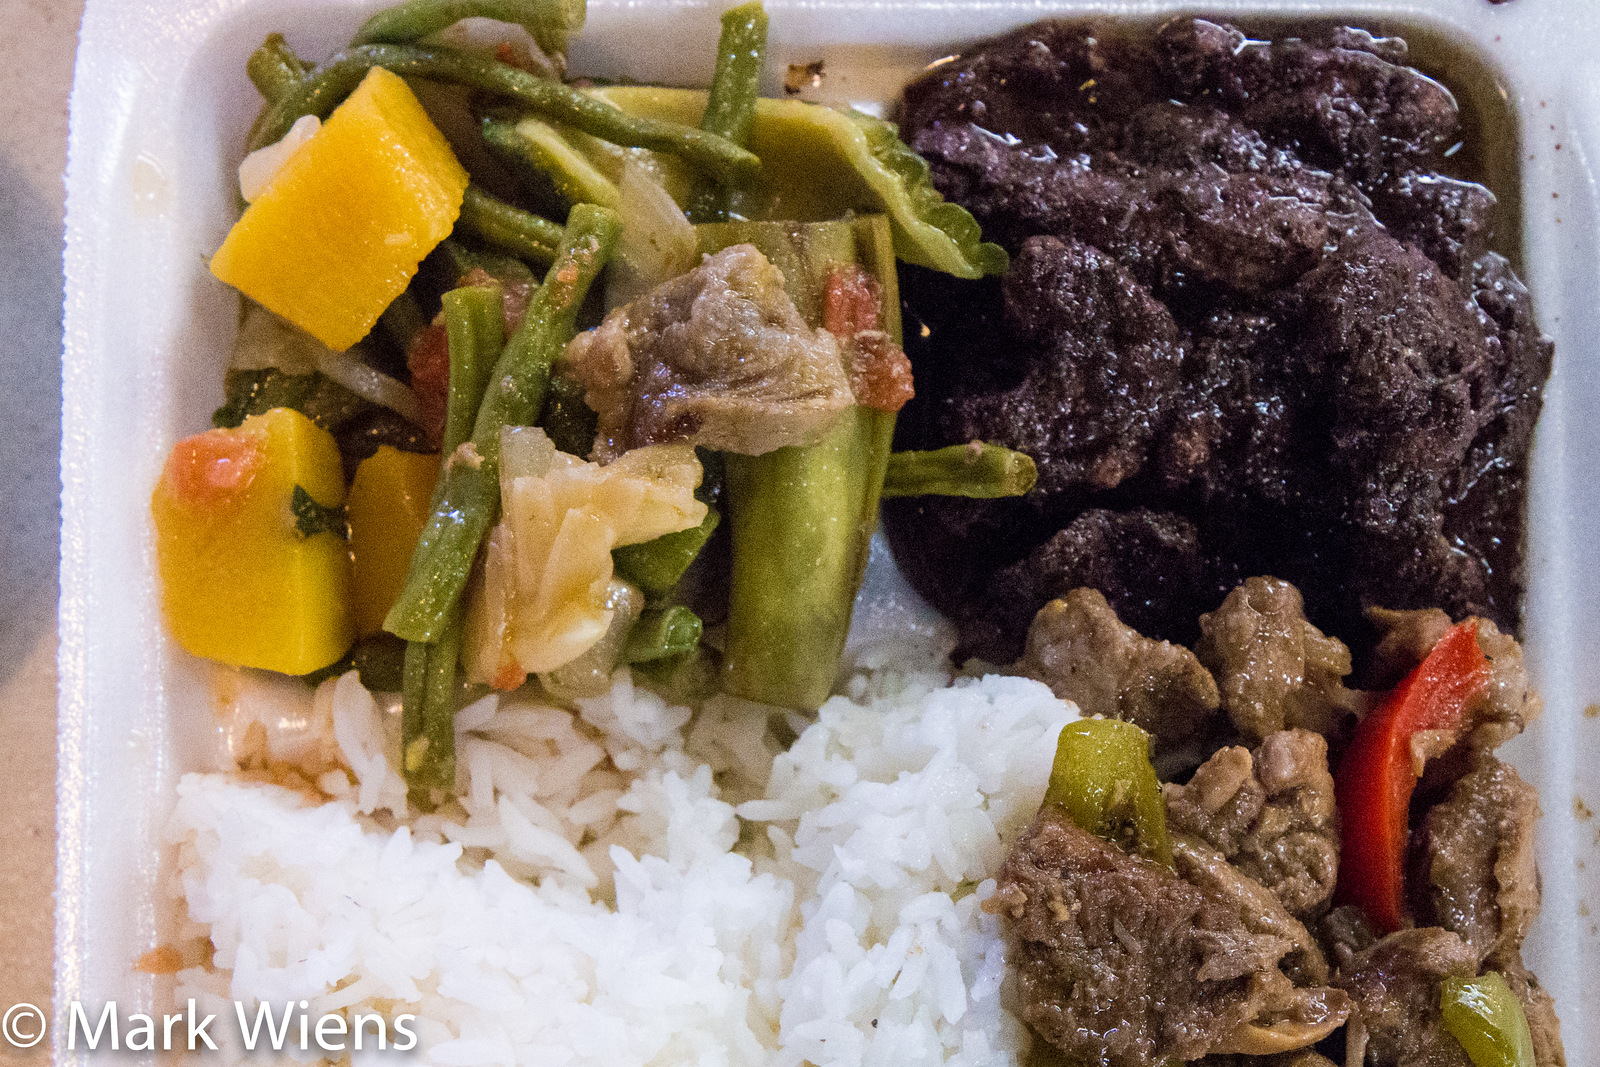 Filipino food in Hawaii